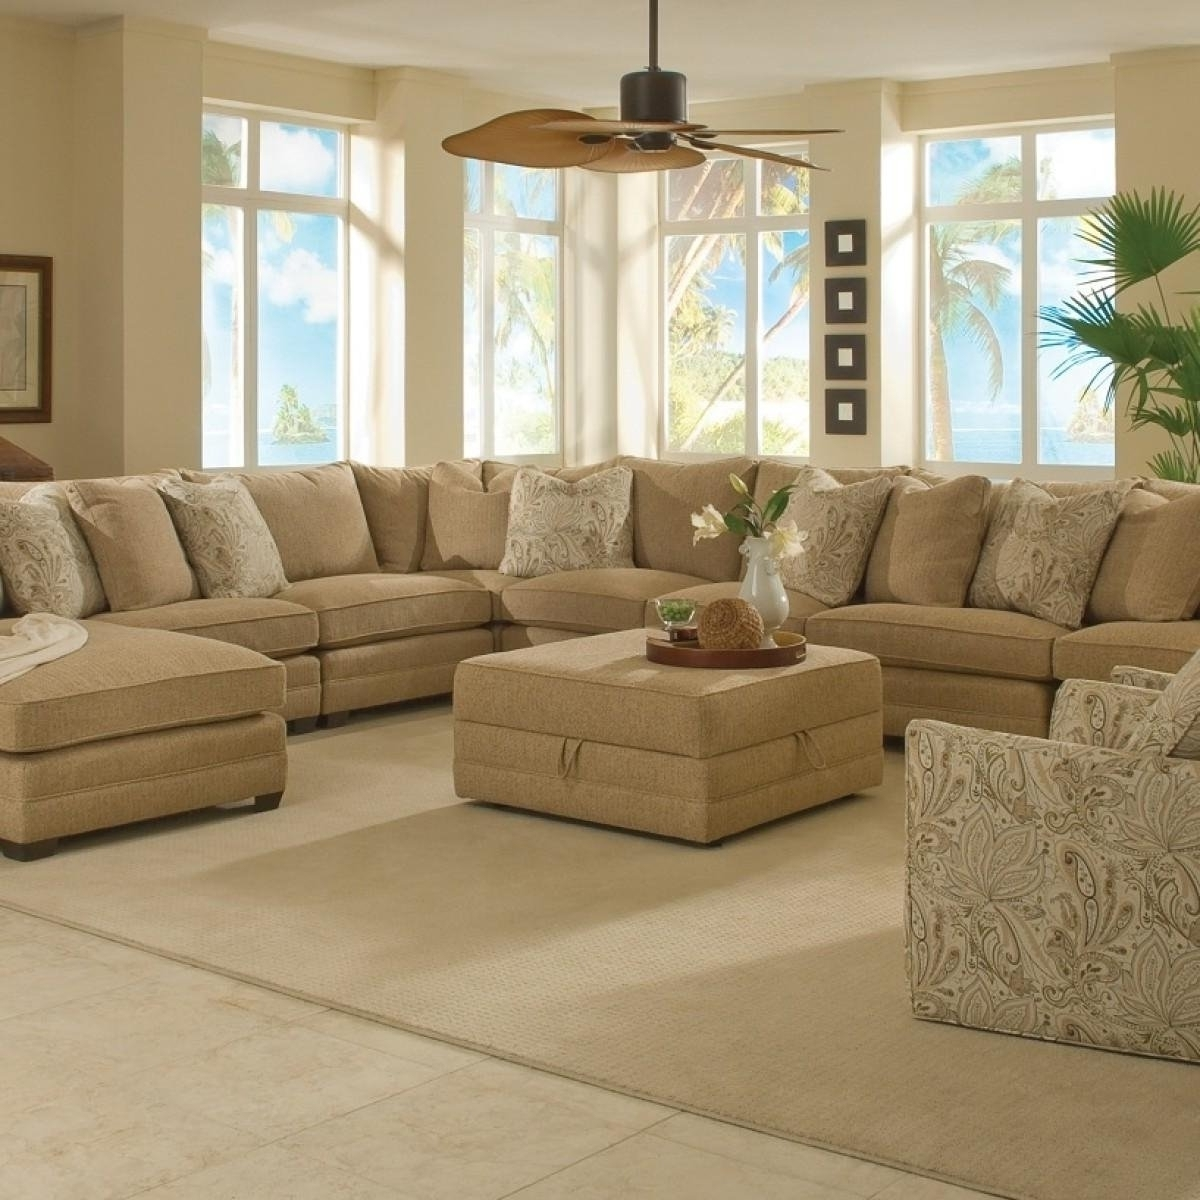 2017 Furniture: Enchanting Large Room In Tan Color And Sectional Sofa Intended For Deep Seating Sectional Sofas (View 1 of 15)